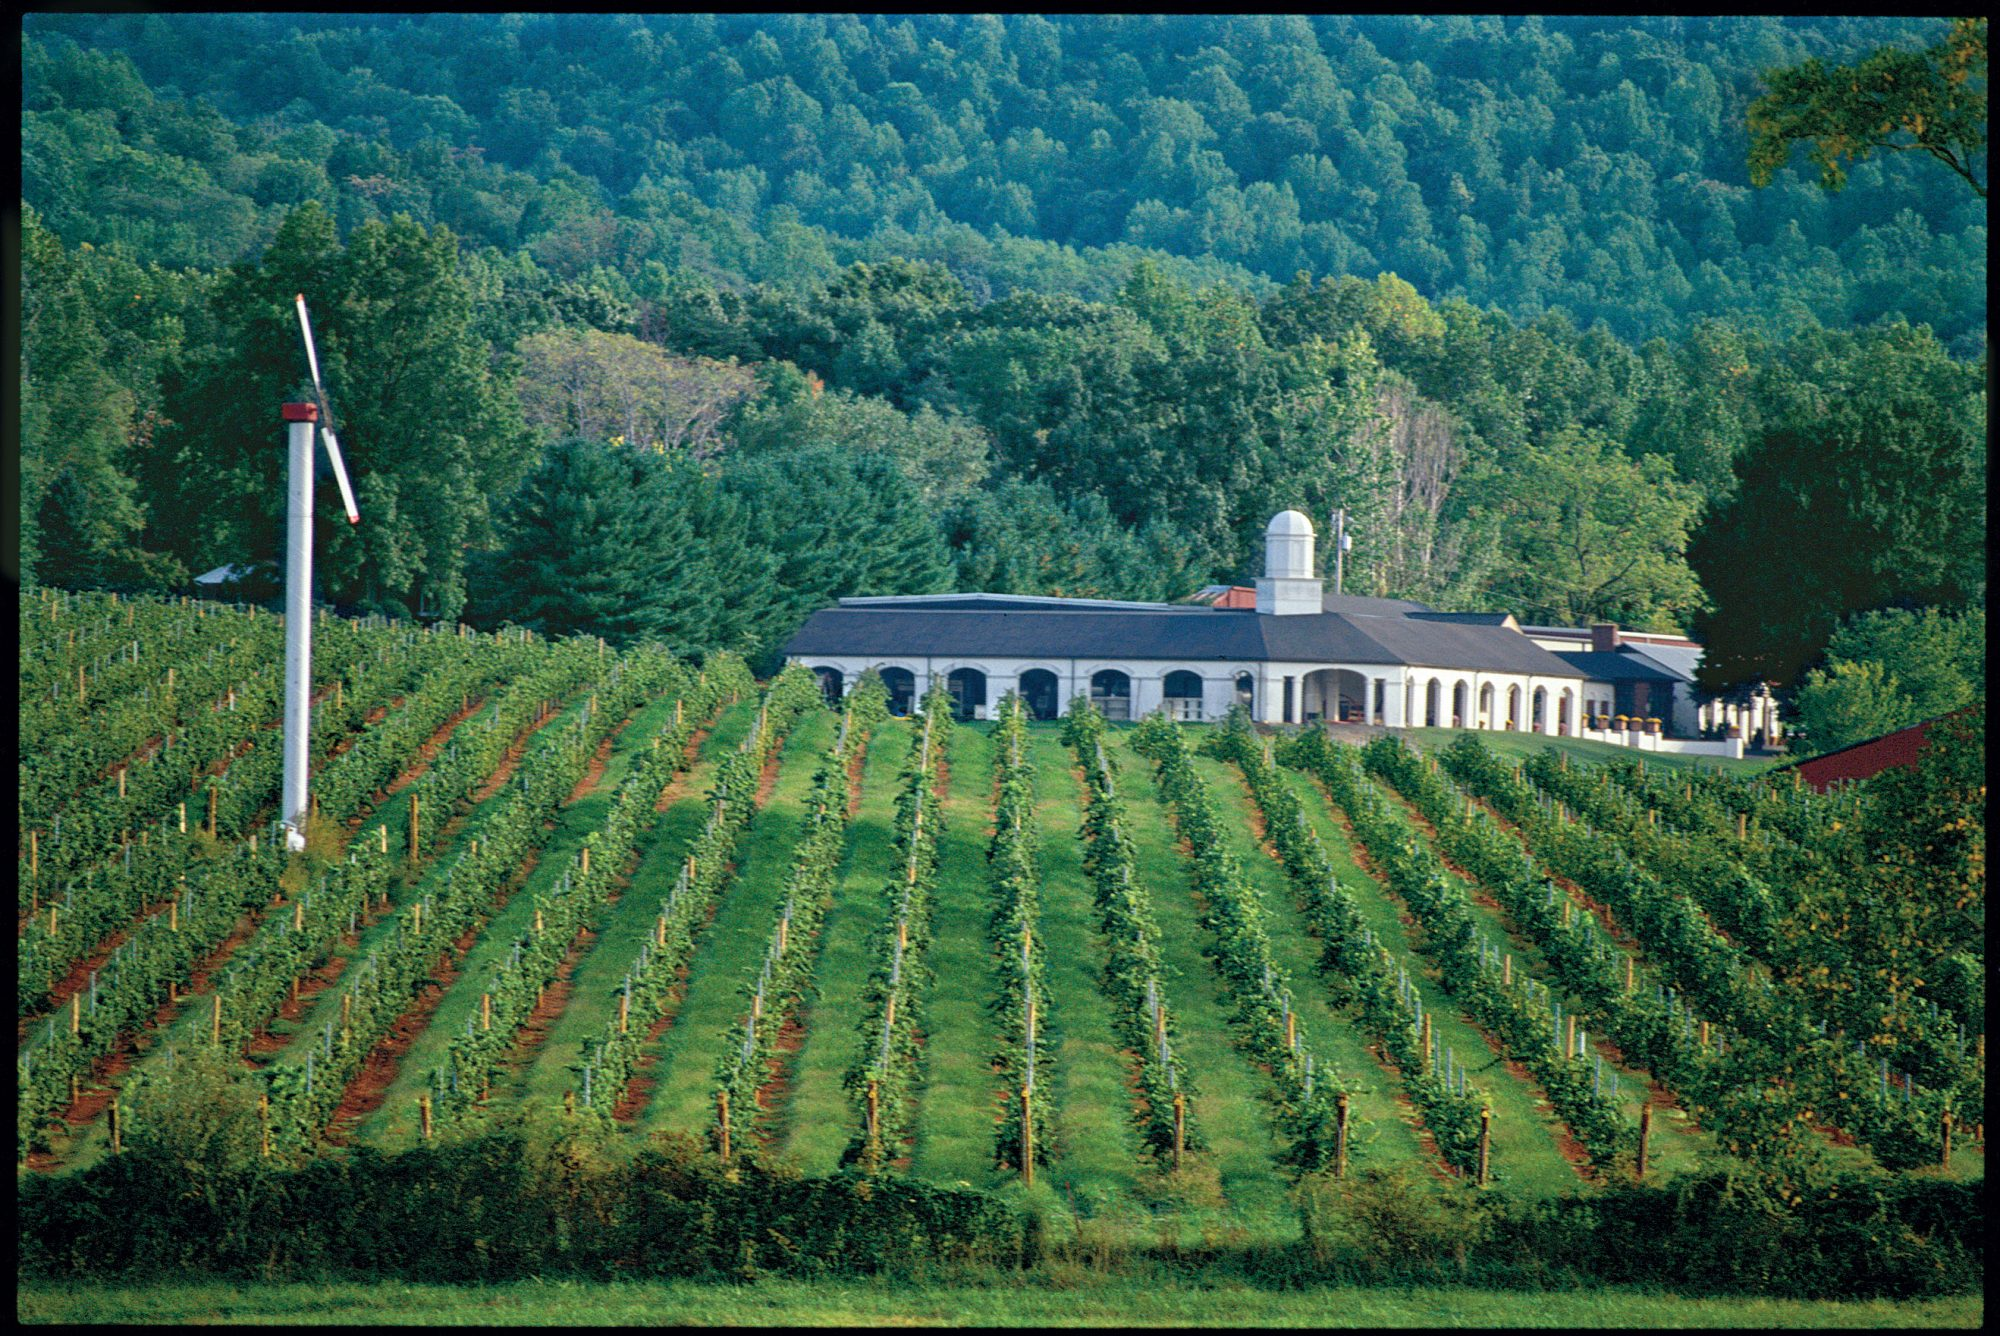 Toast Our Wine Country (VA) (PROMO)